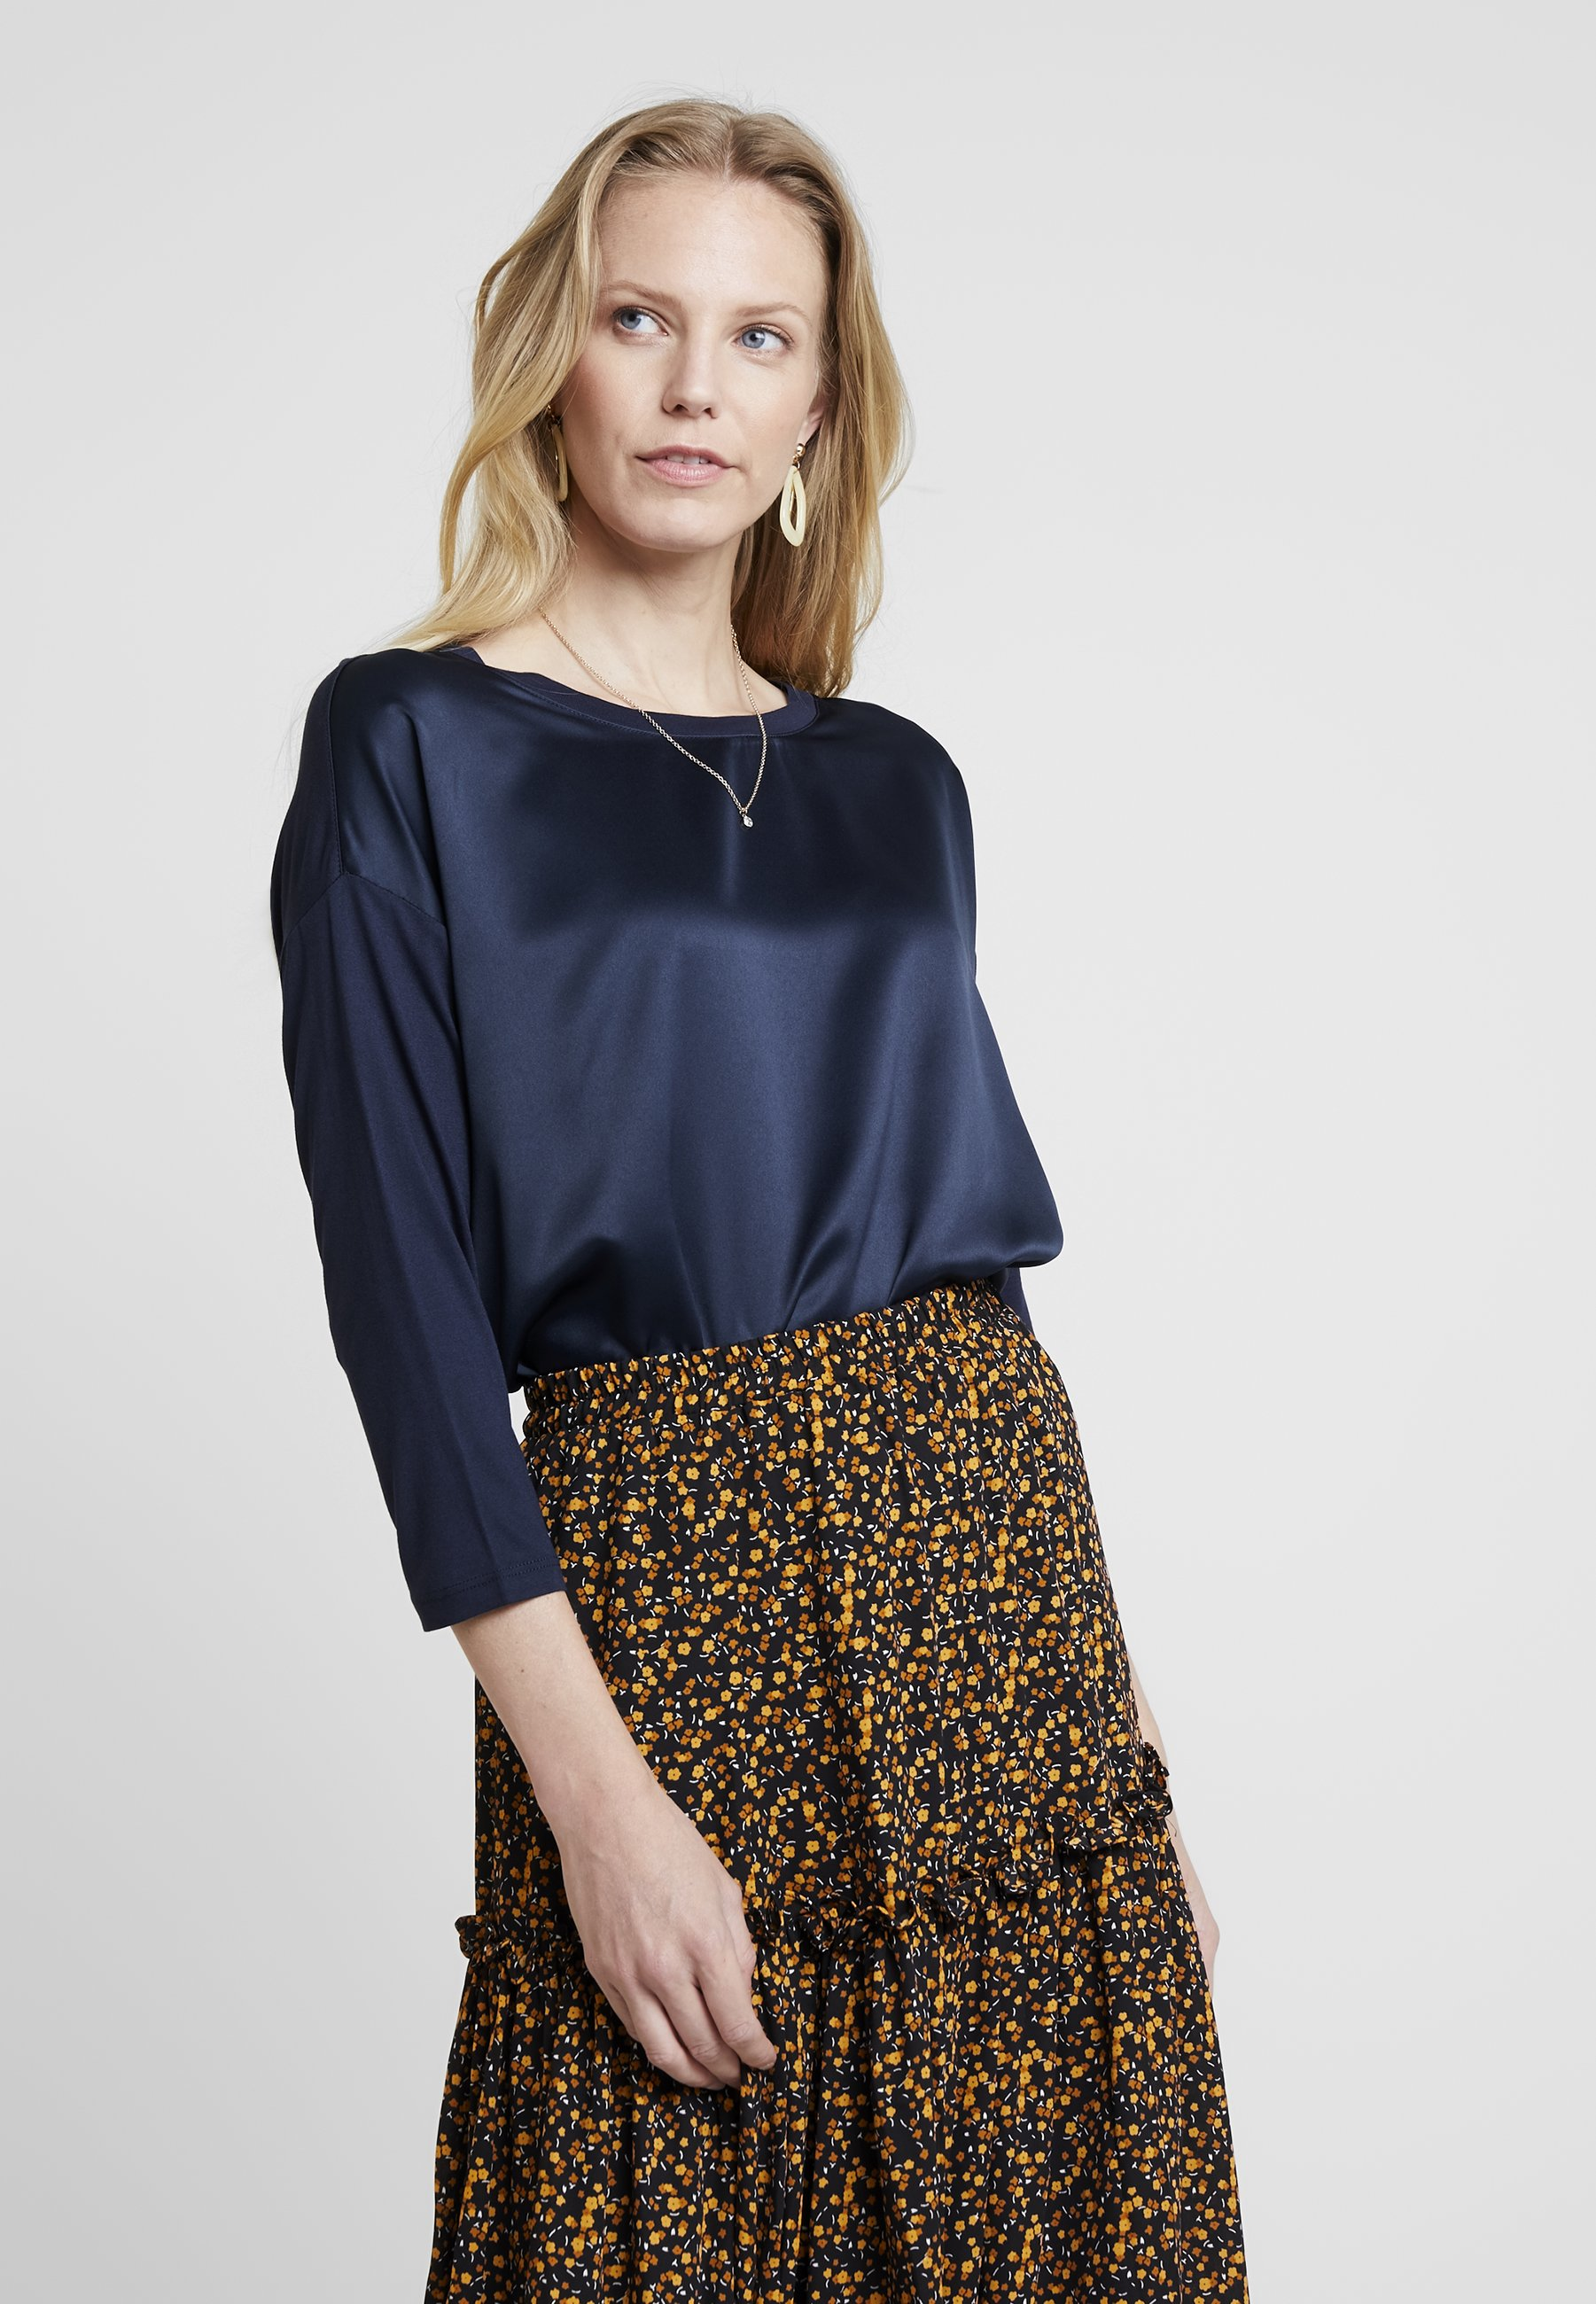 Tom Blue Fabric MixBlouse Sky Tailor Captain Ygb6y7f